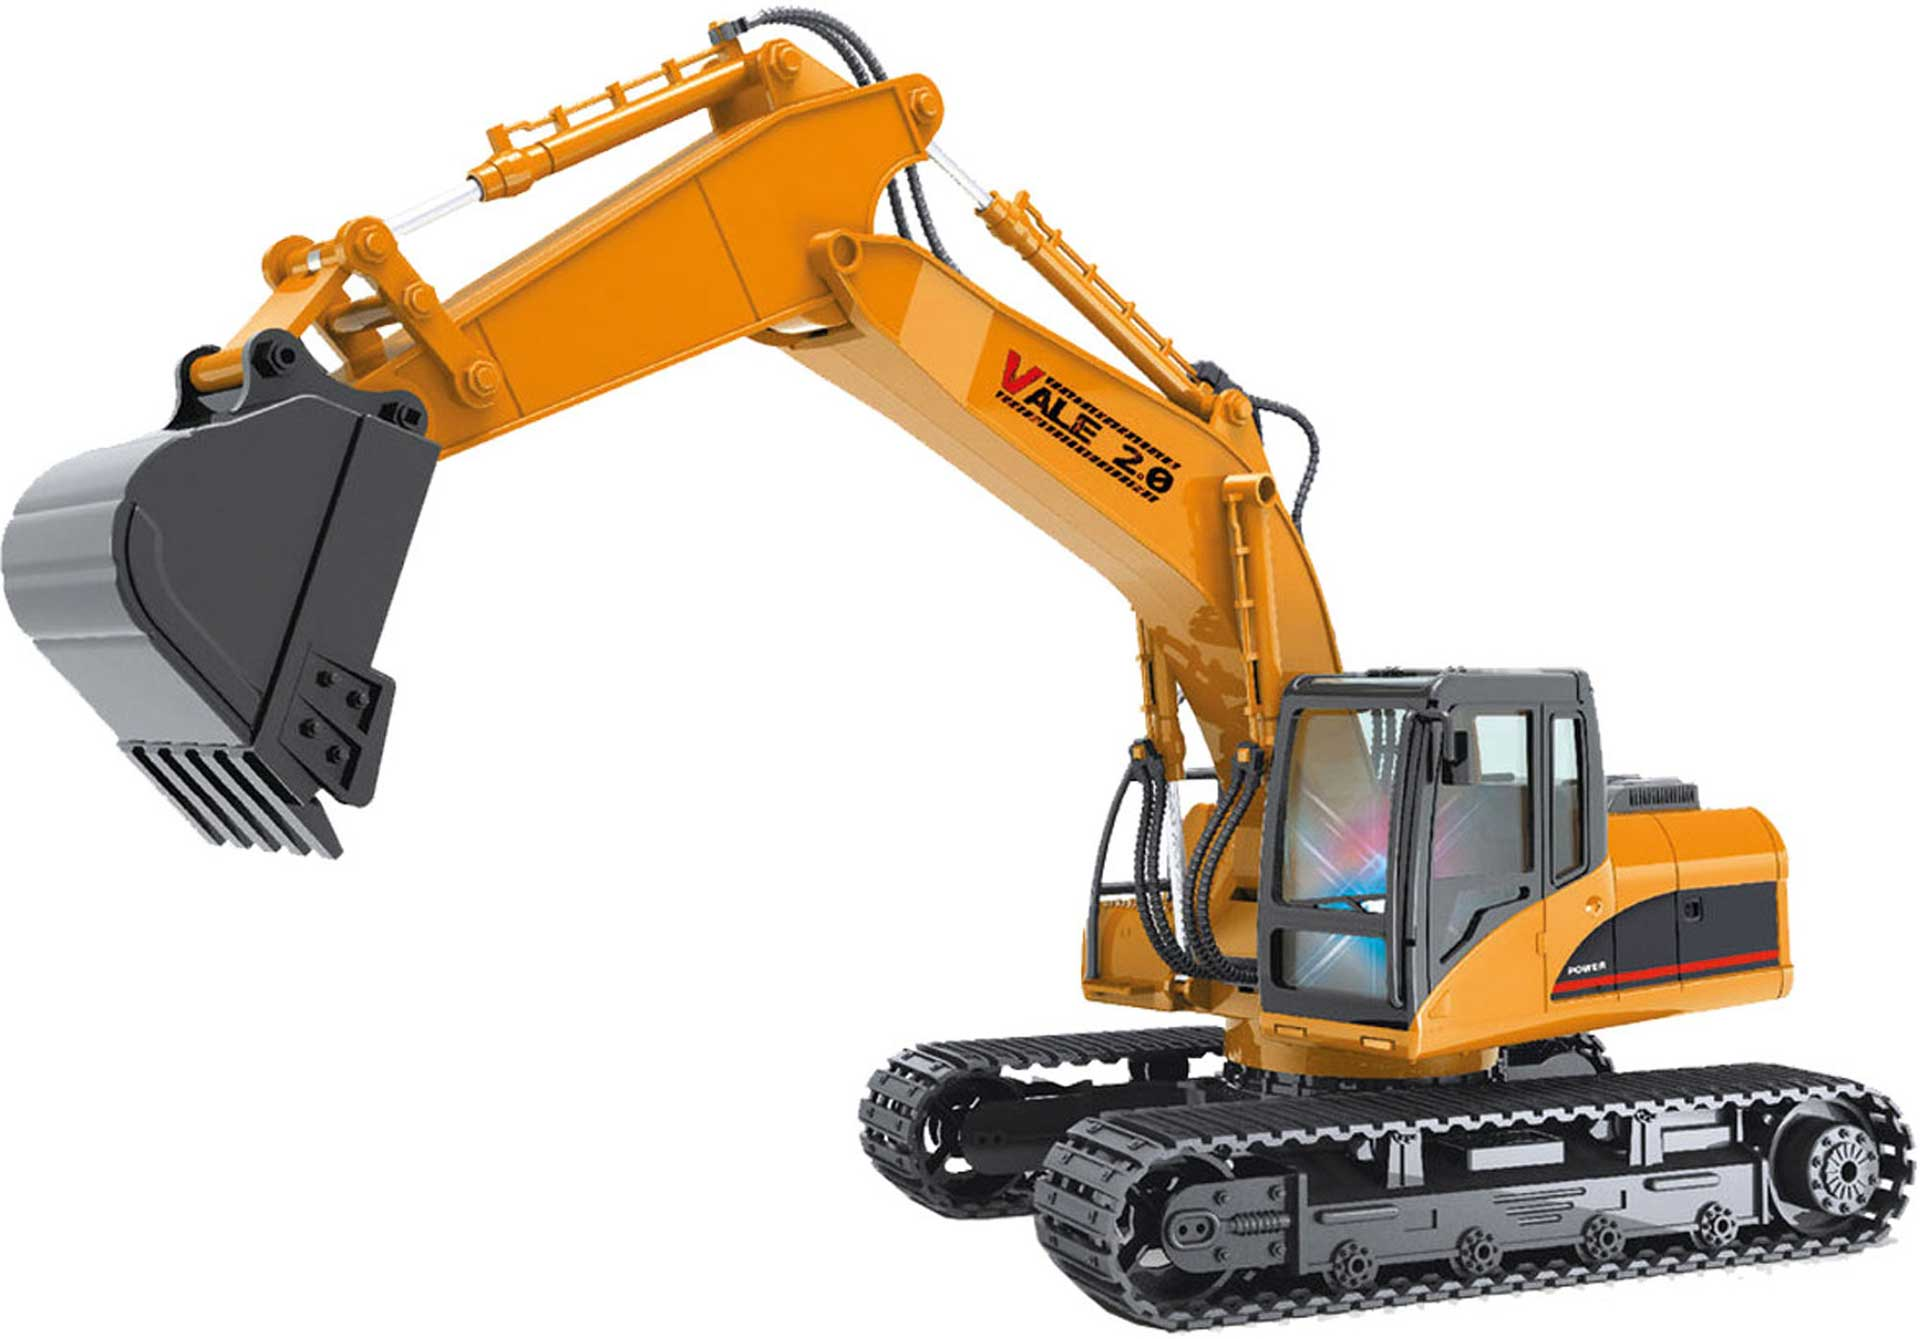 DRIVE & FLY MODELS VALE 2.0 RC EXCAVATOR RTR 1/14